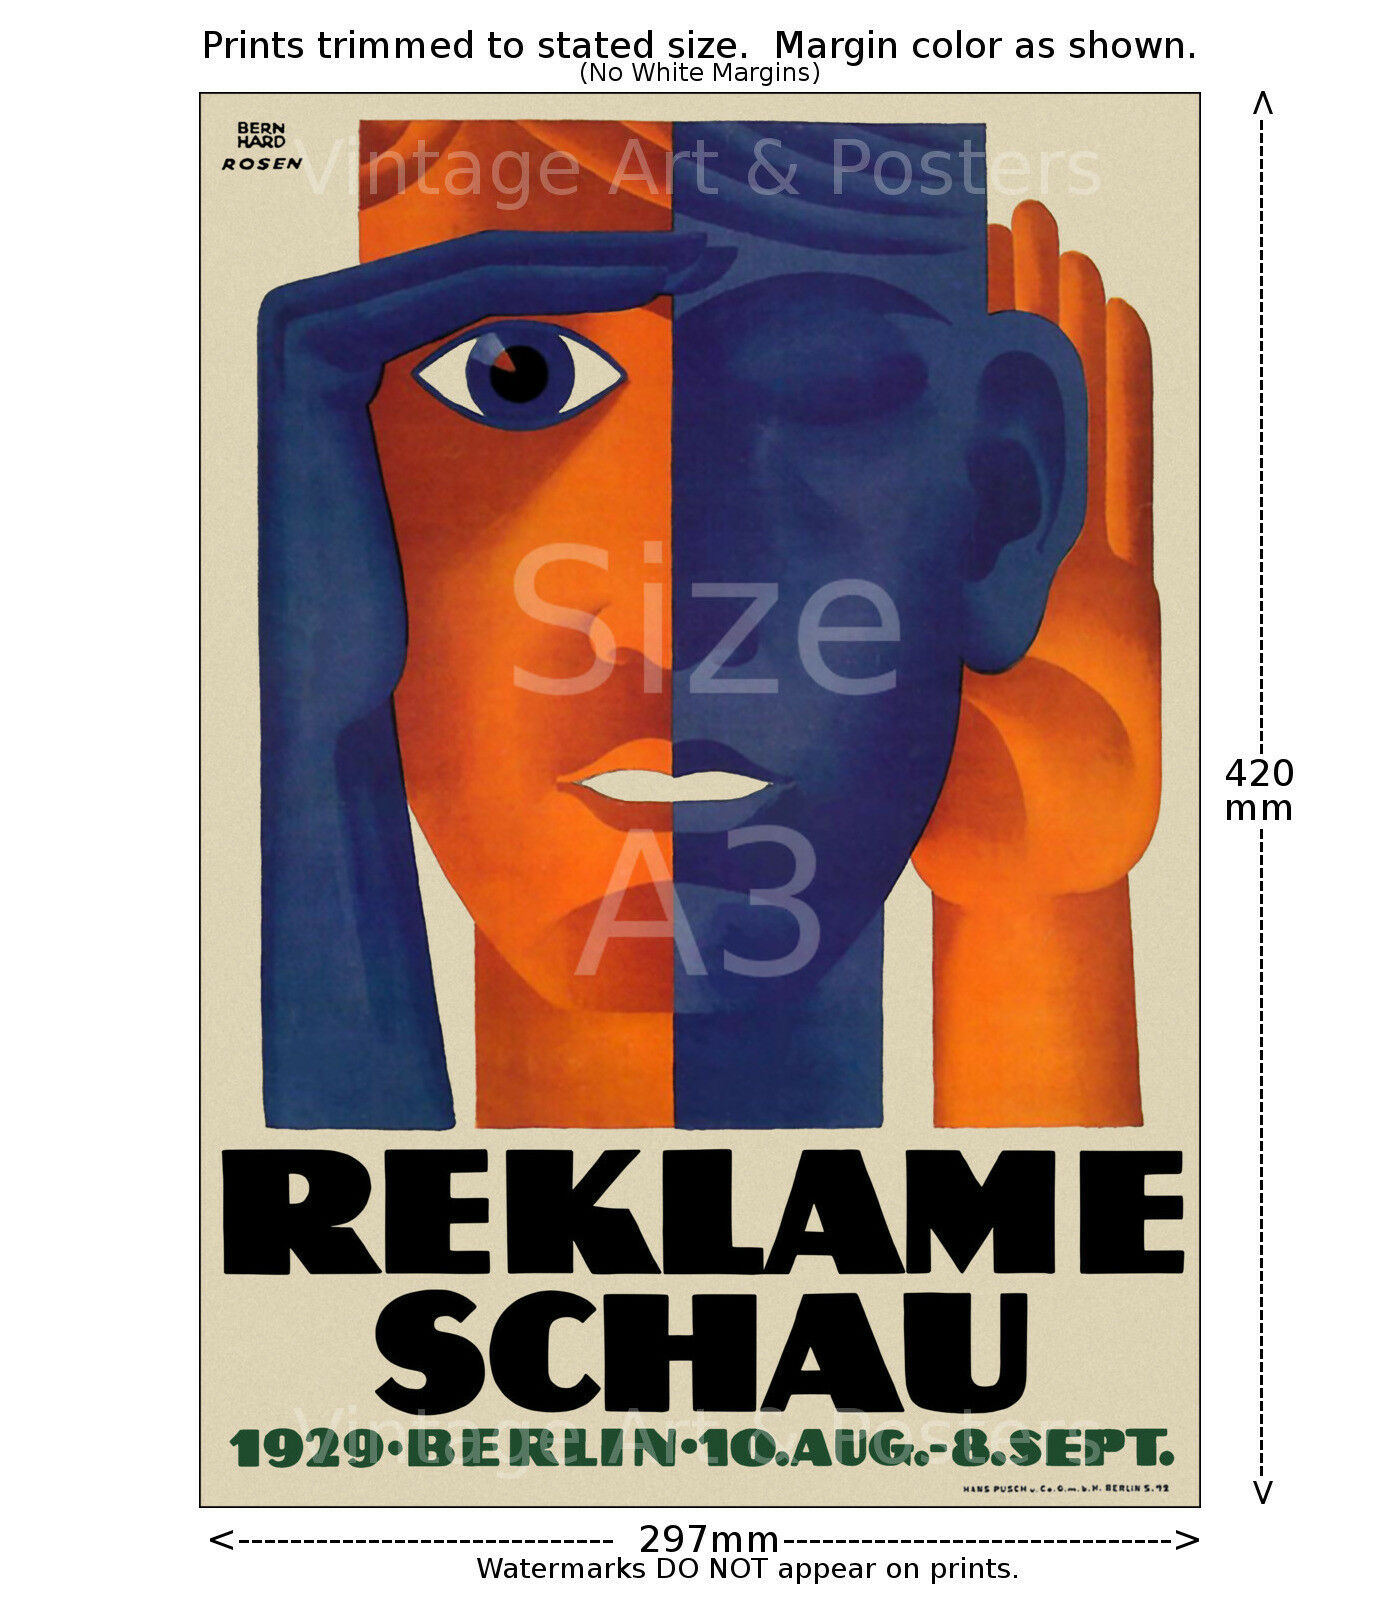 1929 Berlin Advertising Art Exhibition Poster Print 4 sizes, matte+glossy avail